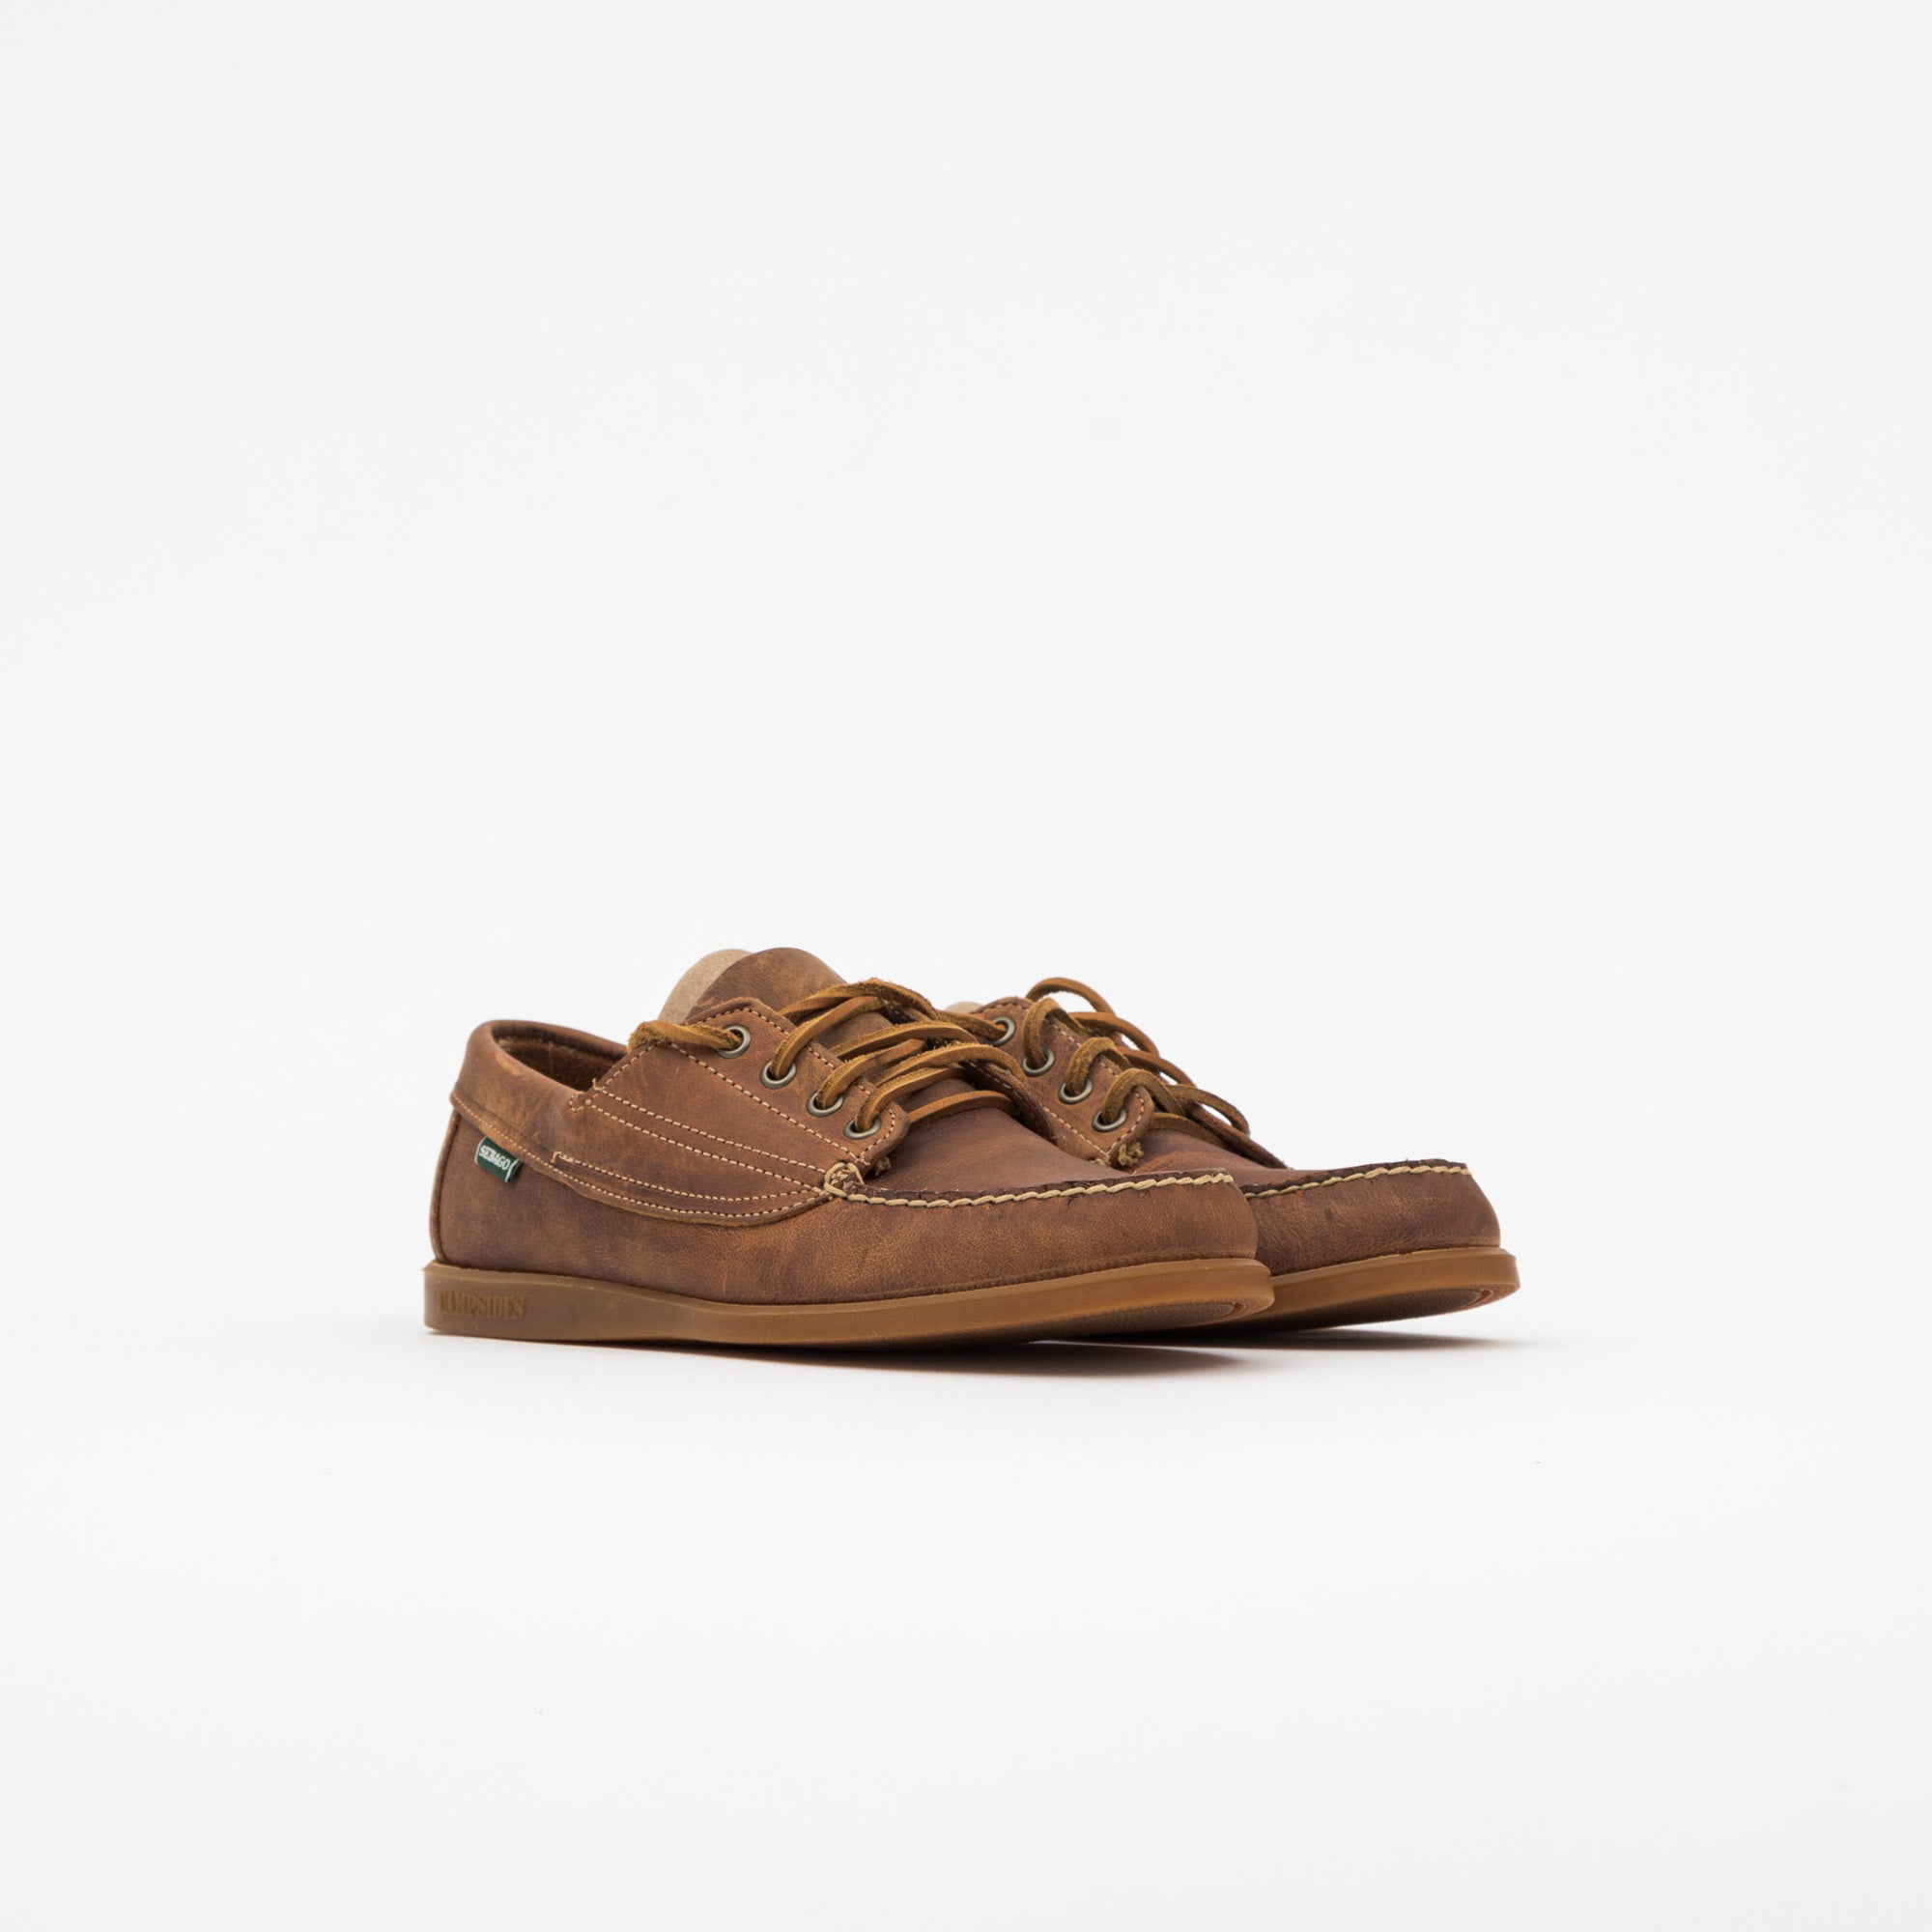 Askook Moccasins Crazy Horse Leather Shoe